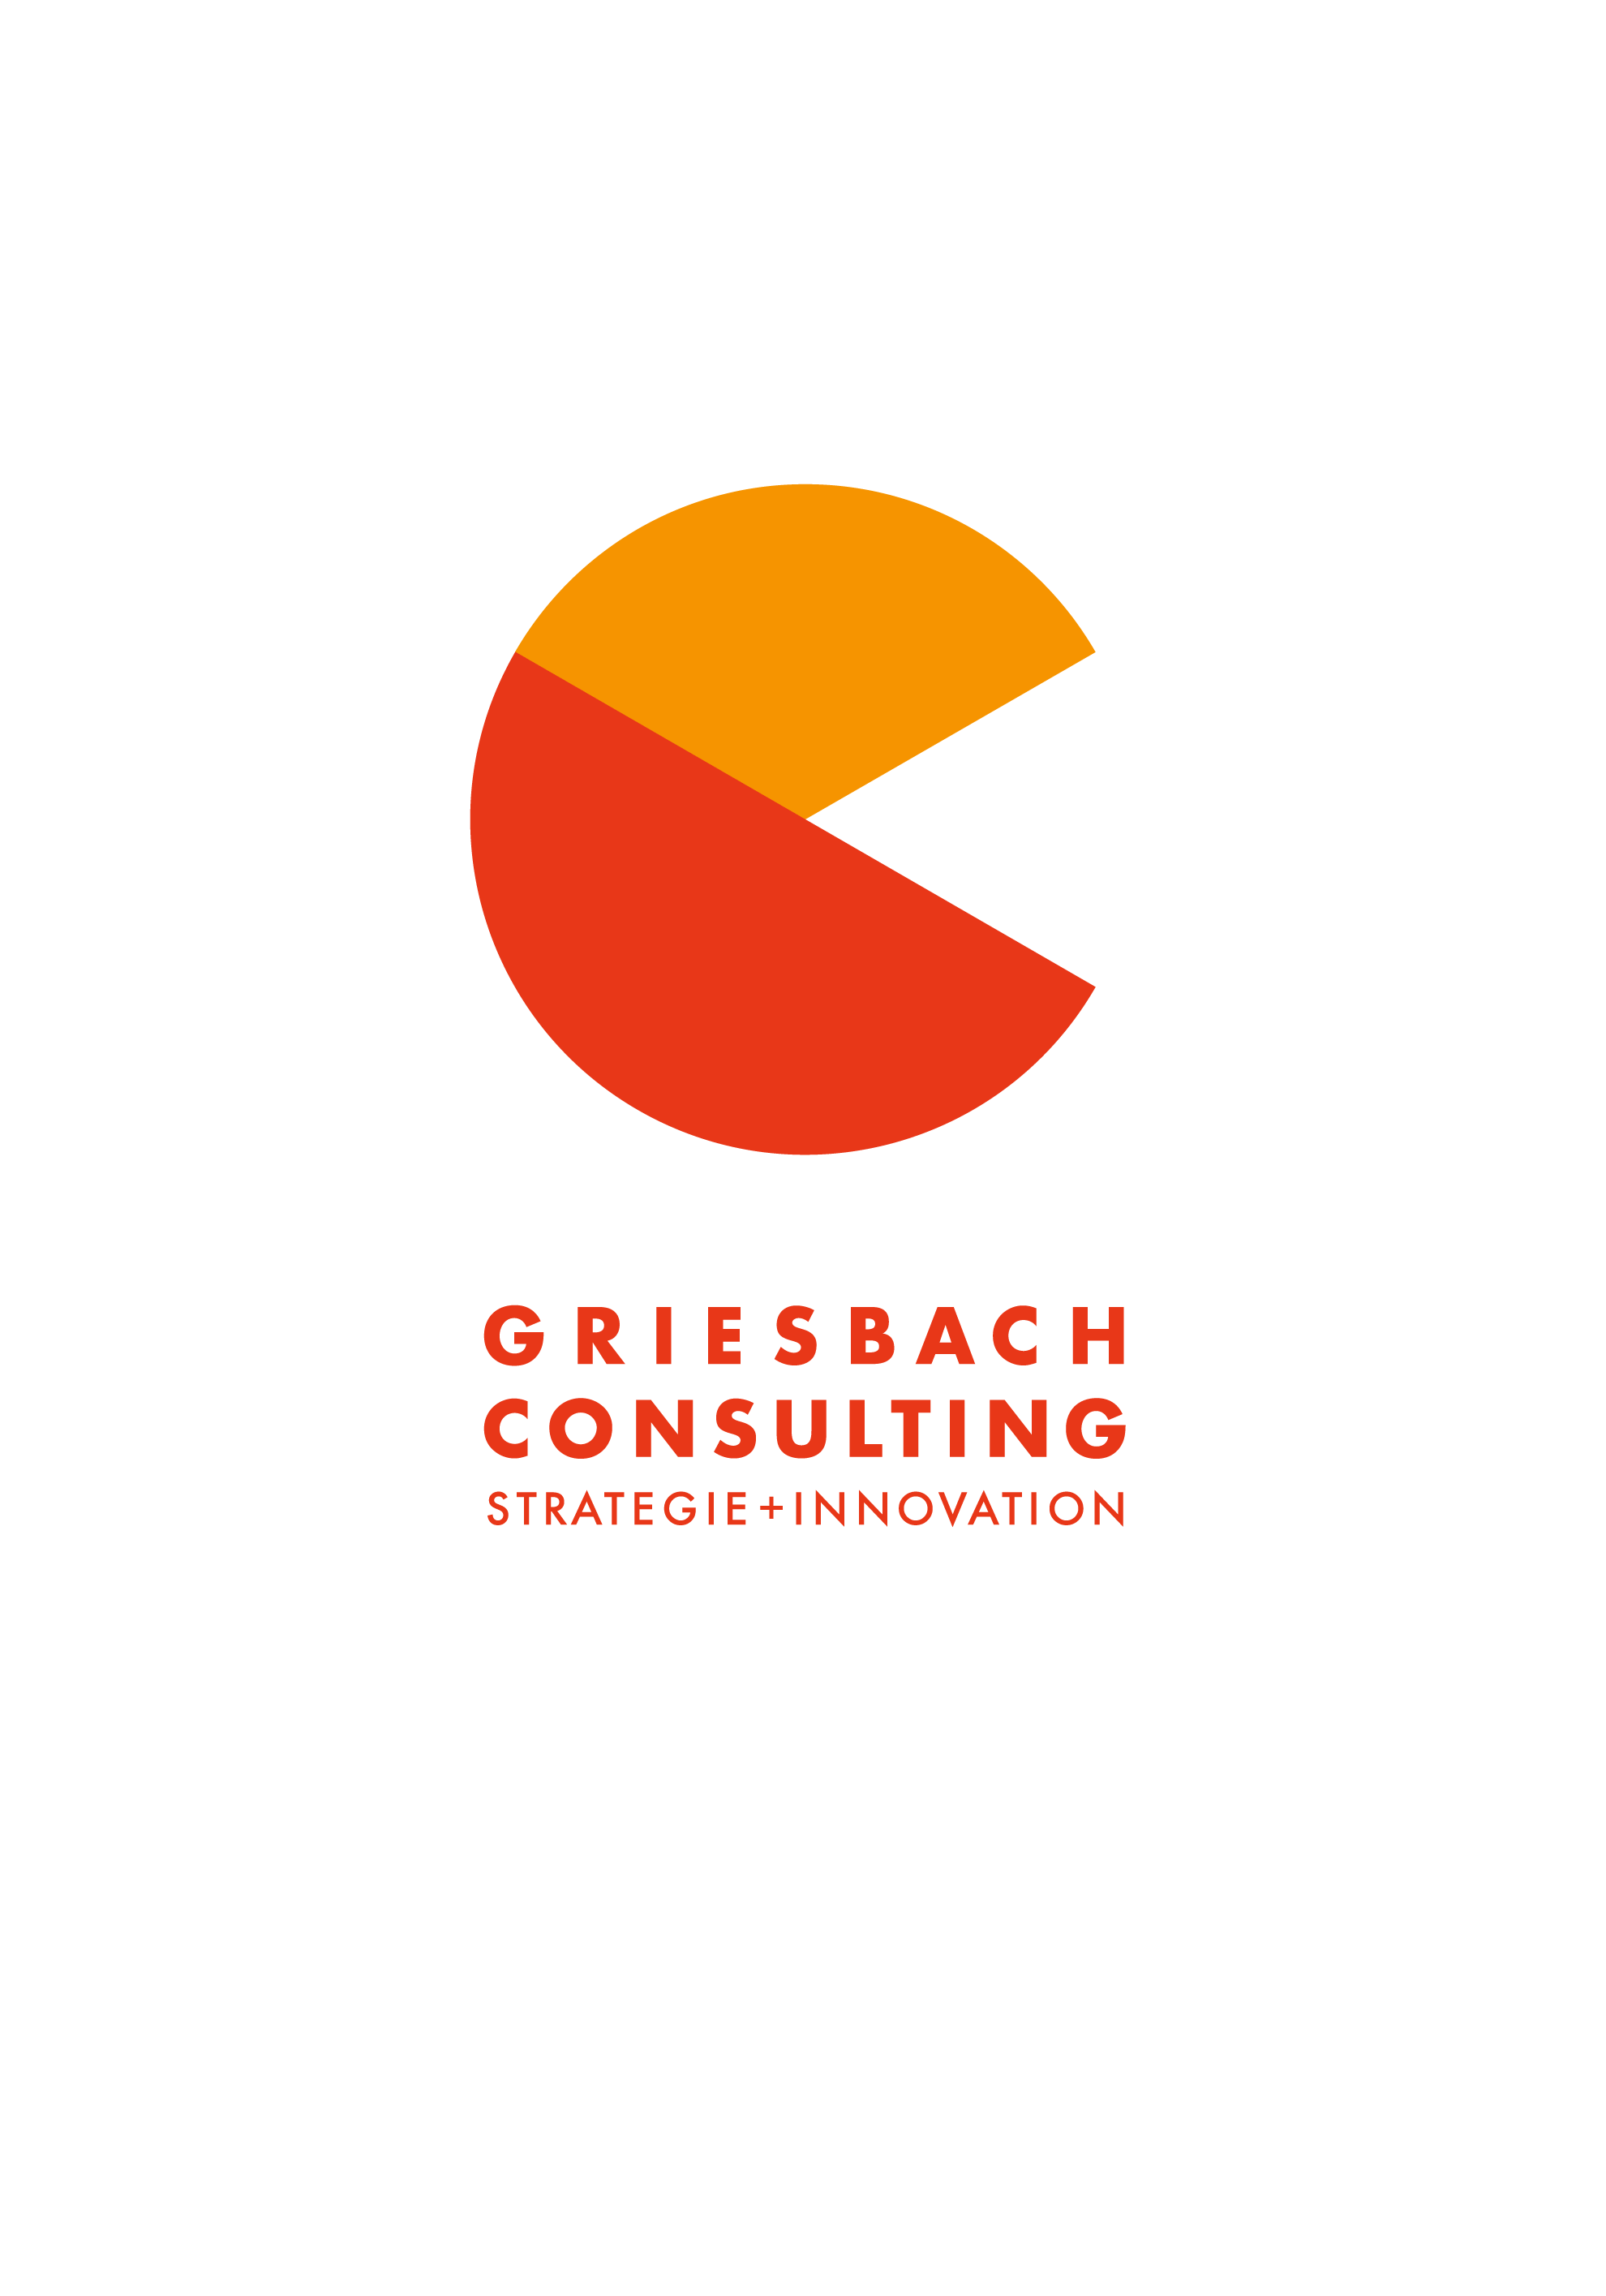 Griesbach Consulting logo